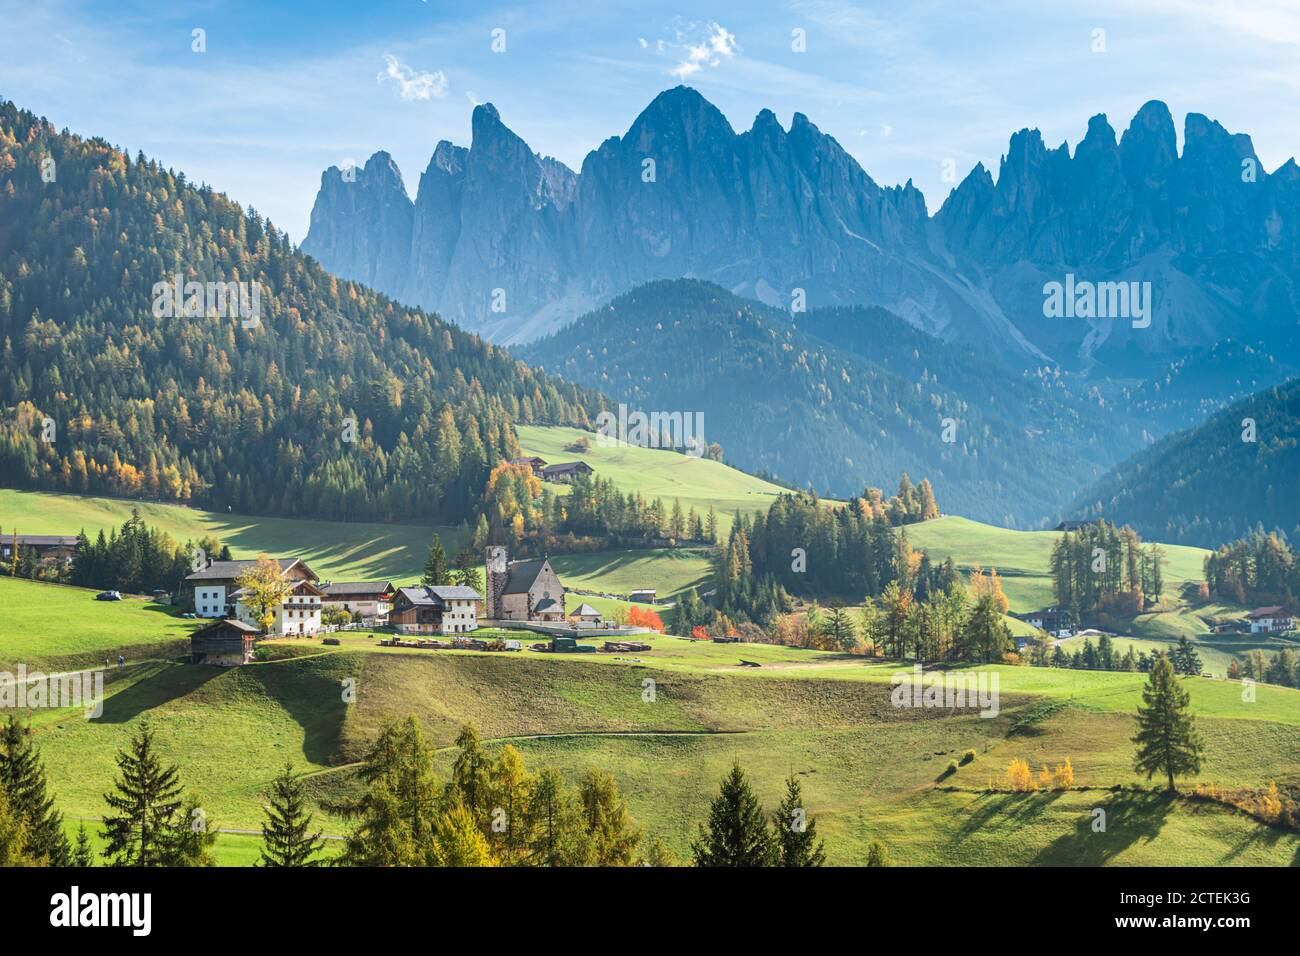 Landscape of early autumn on the church Santa Magdalena in northern Italy on the slopes of the Dolomites in the valley of Val di Funes. Stock Photo